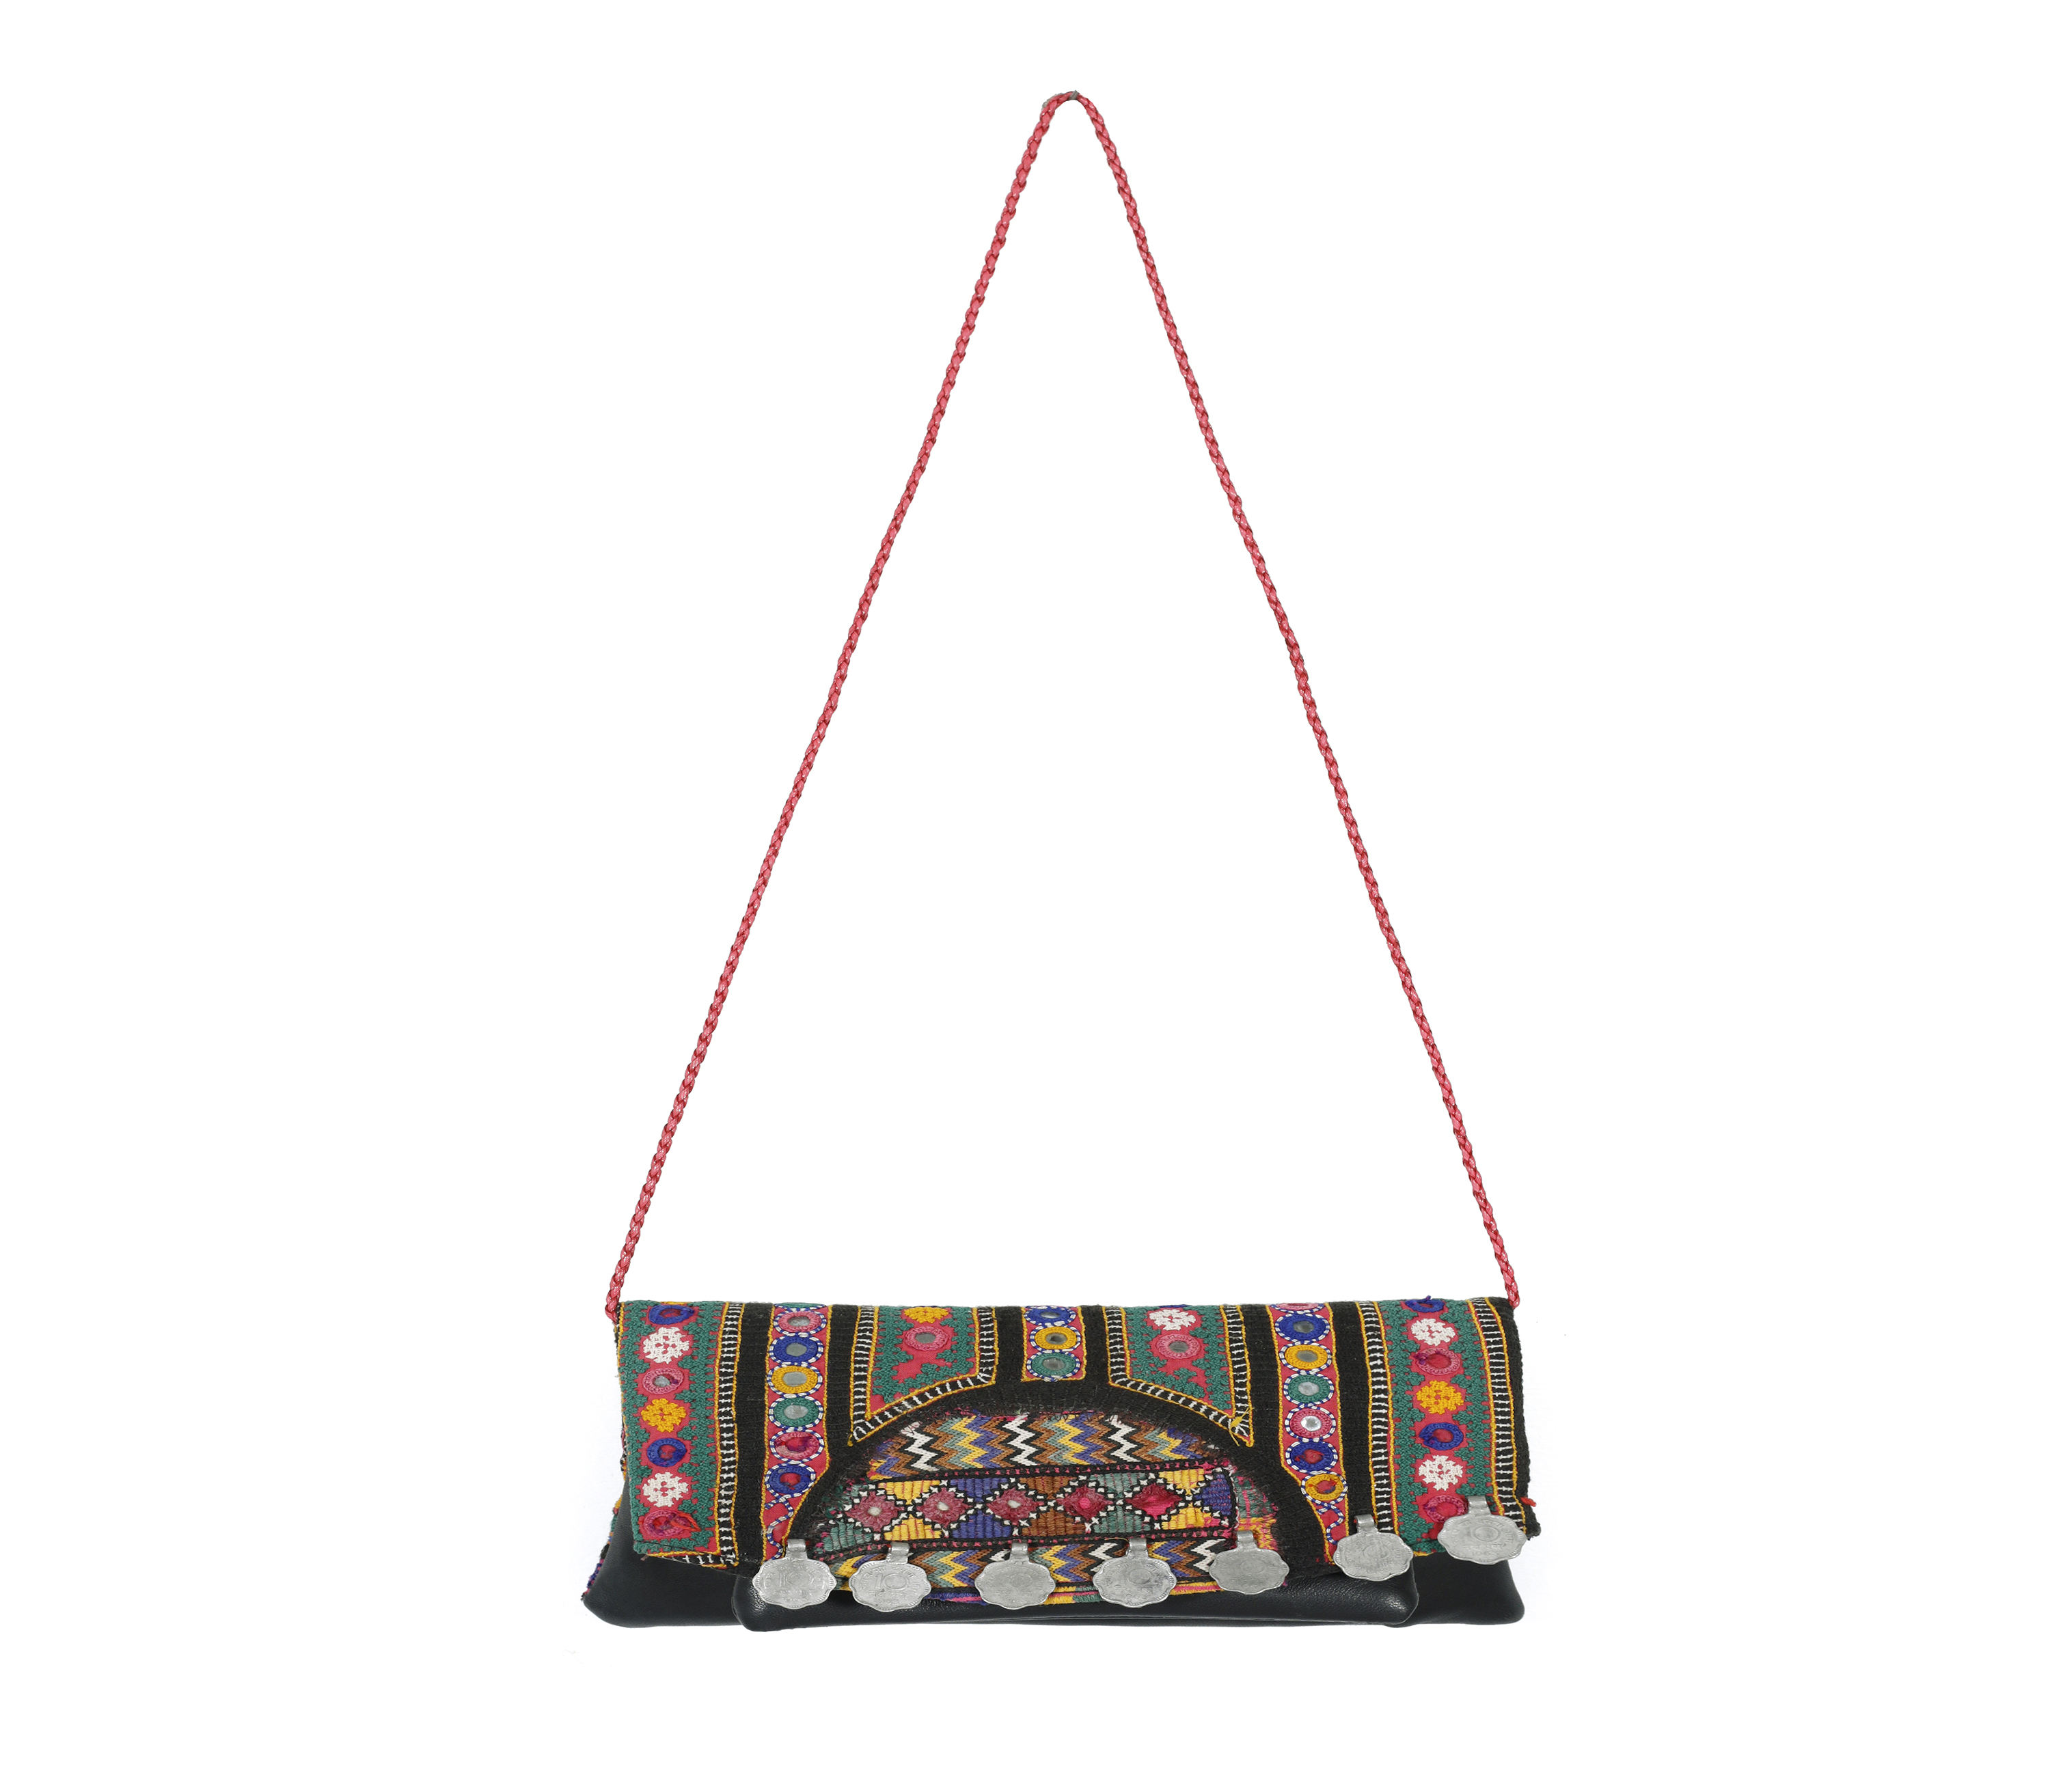 Banjara embroidered clutch purse messenger cross body bag Indian leather bag